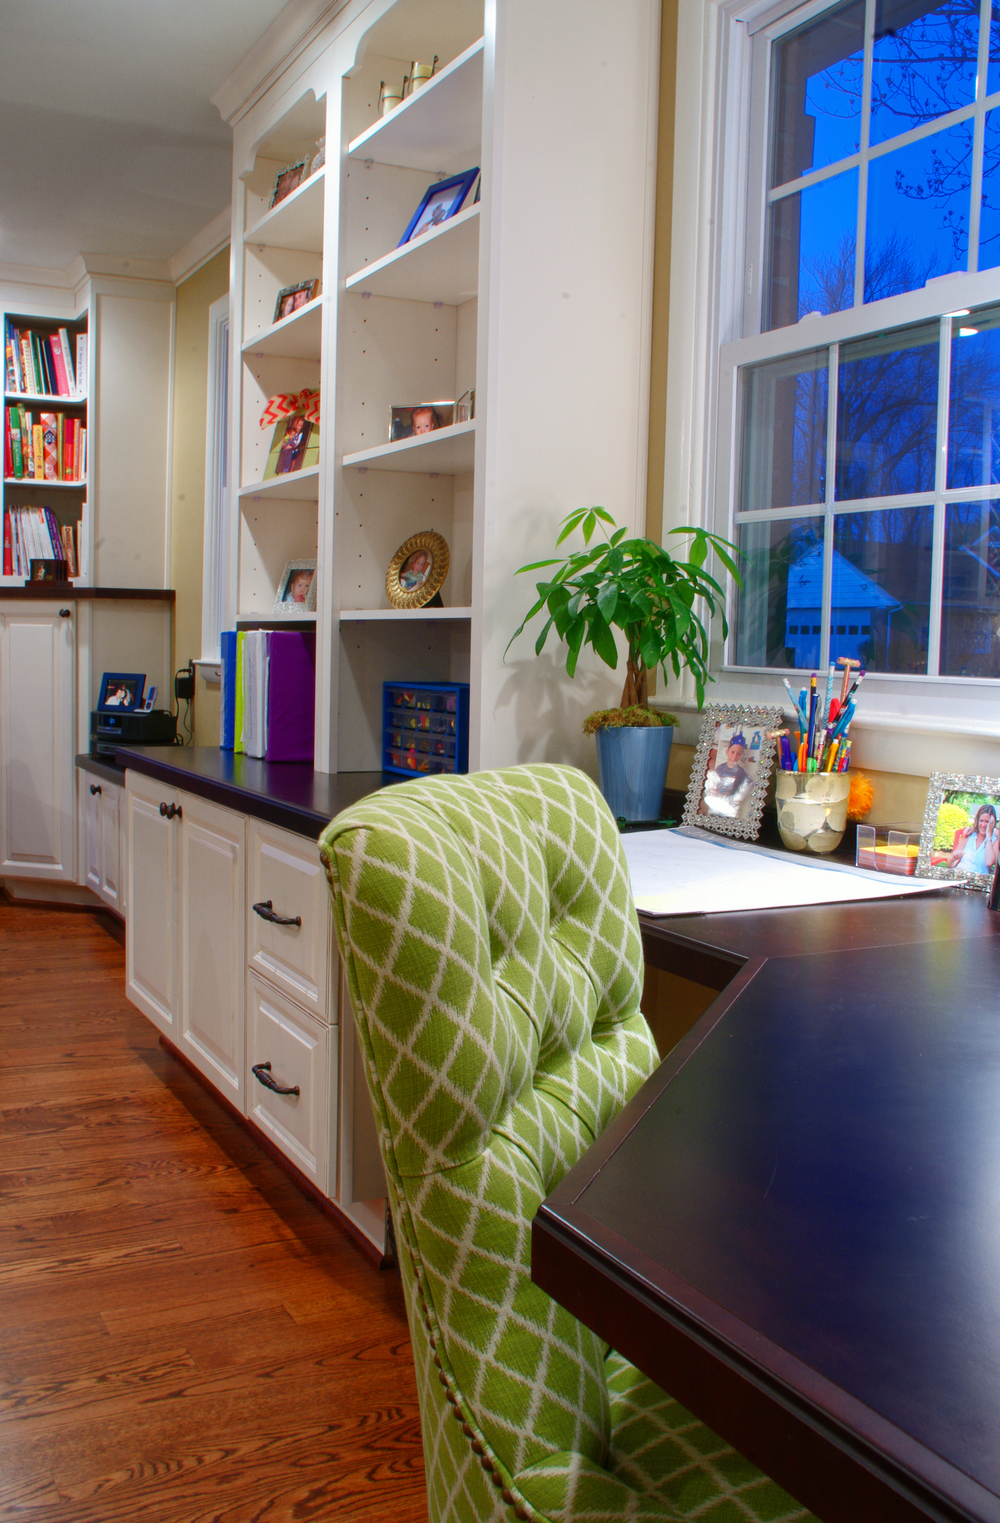 The open study area that sits directly off the kitchen.